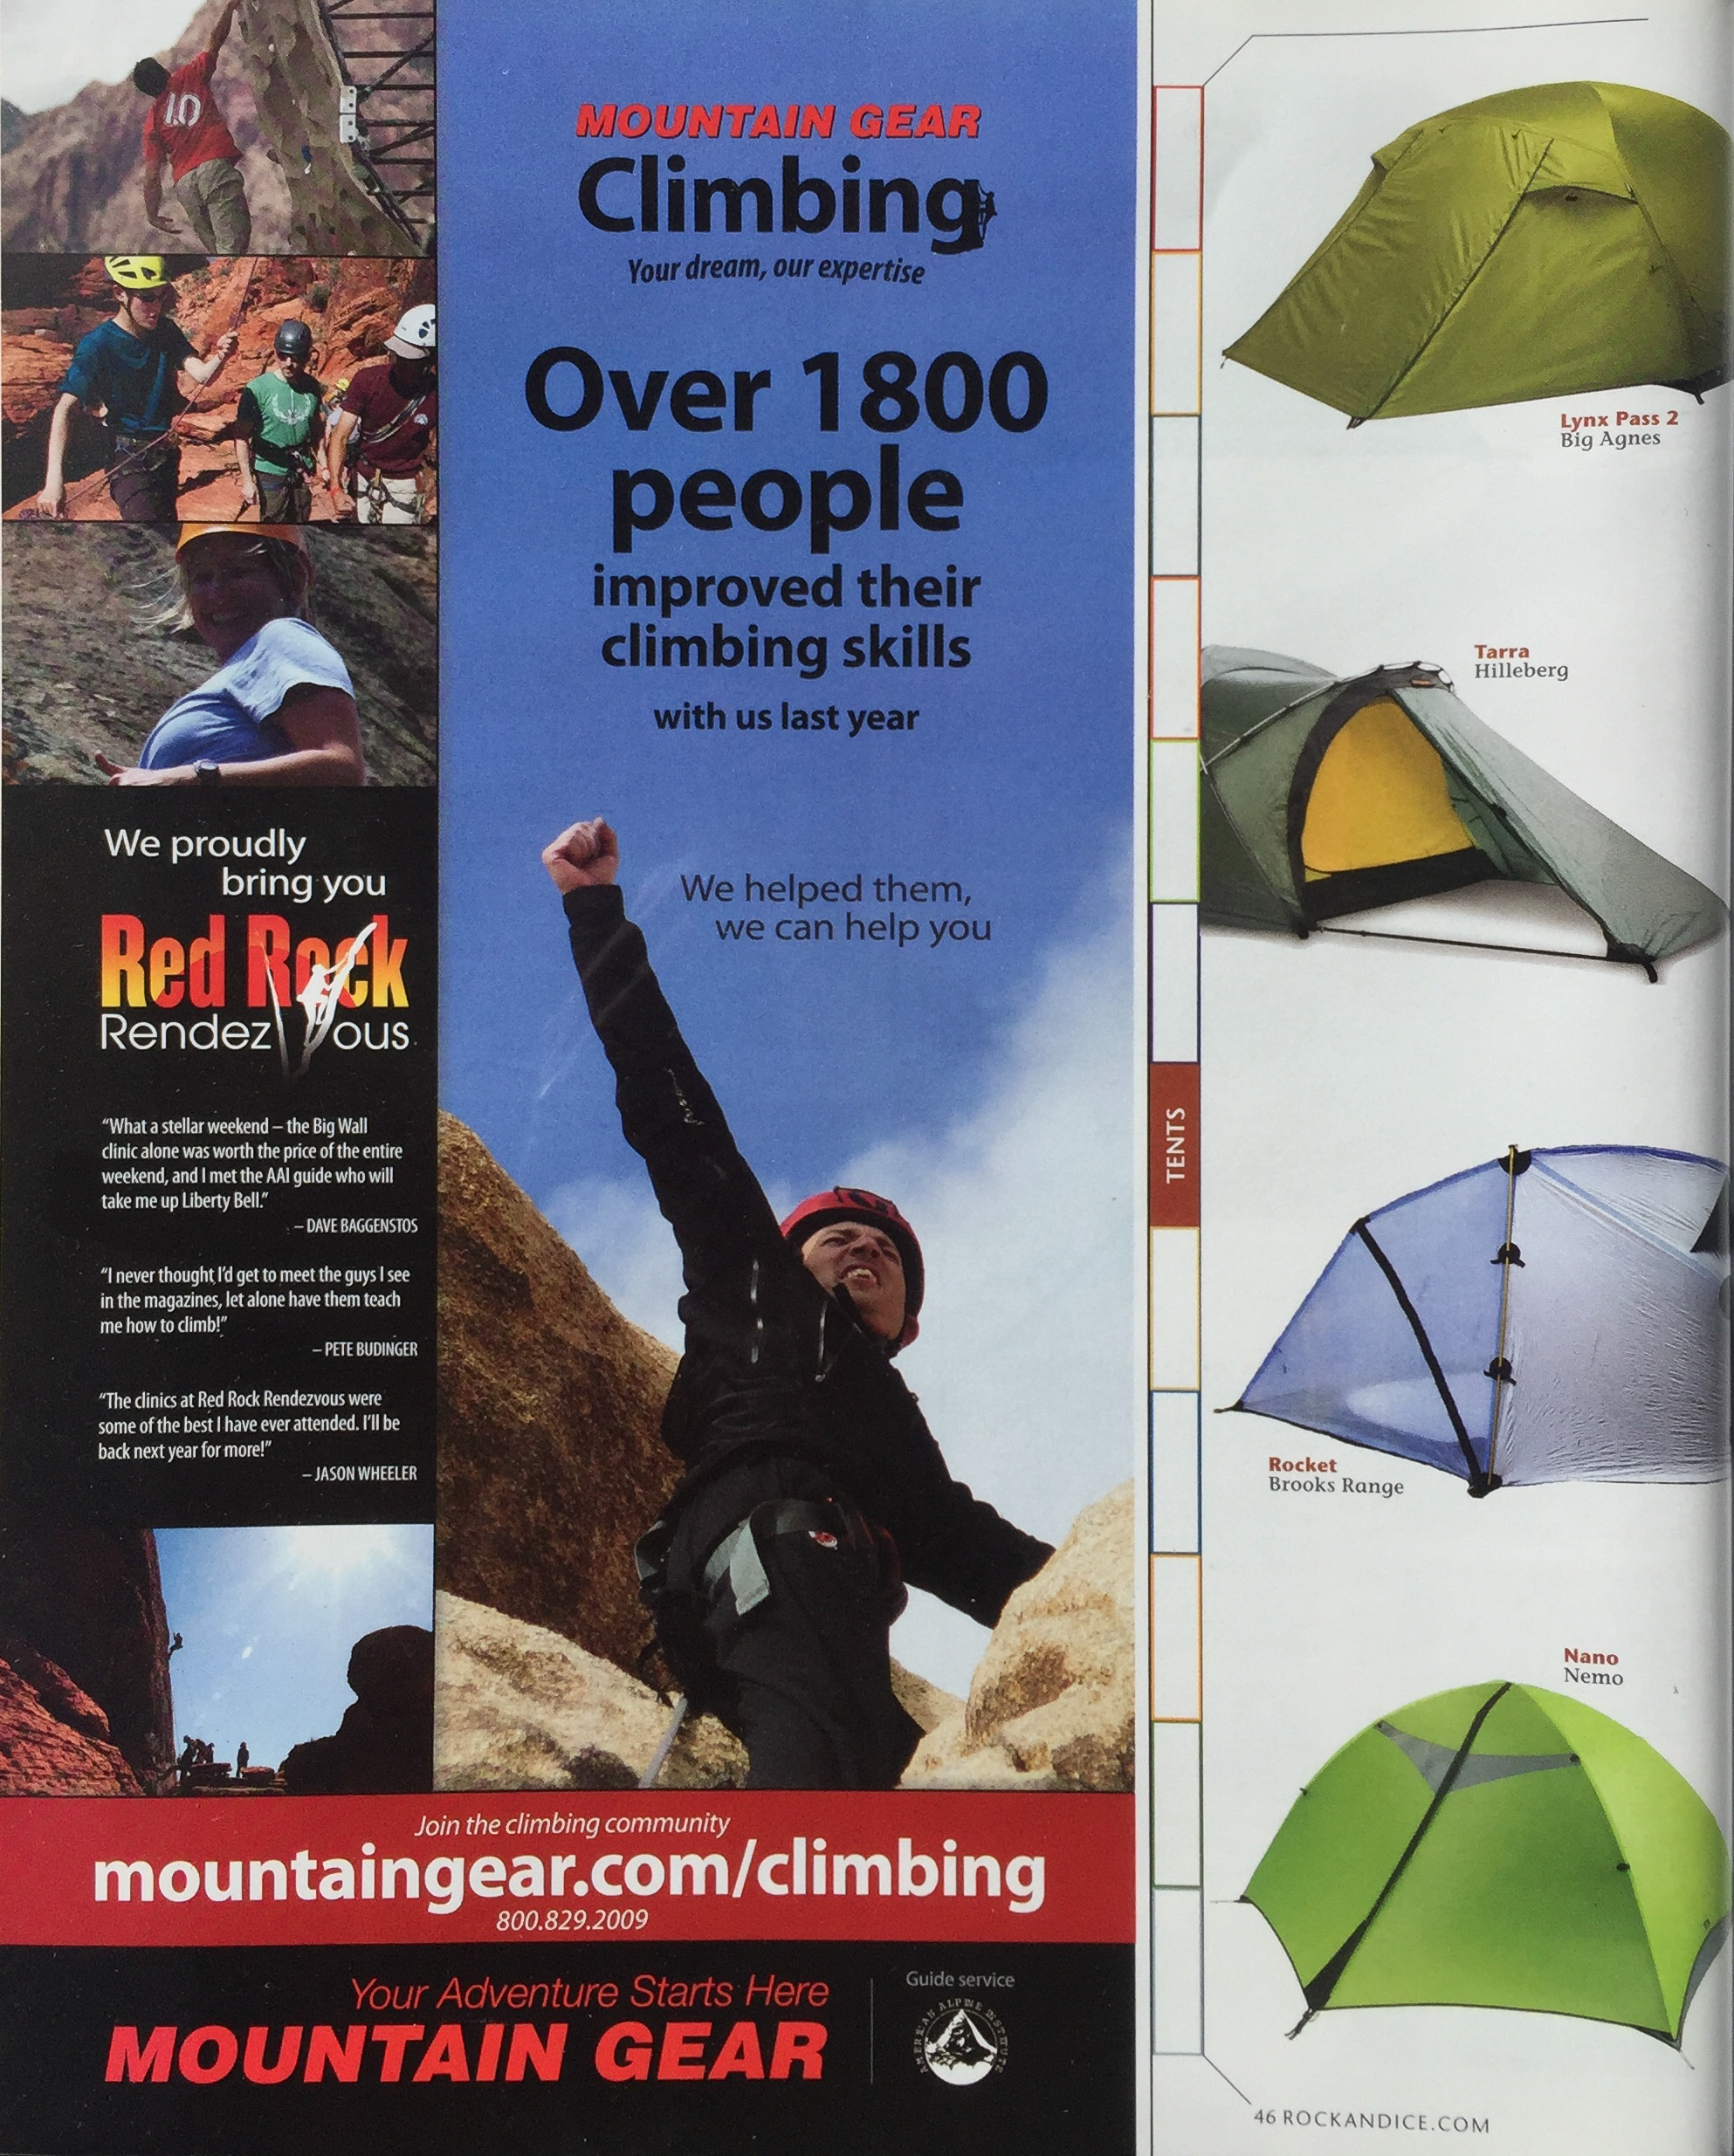 MOUNTAIN GEAR EVENT ADVERTISEMENT   RED ROCK RENDEZVOUS | LAS VEGAS   IMAGES | ERIC ODENTHAL